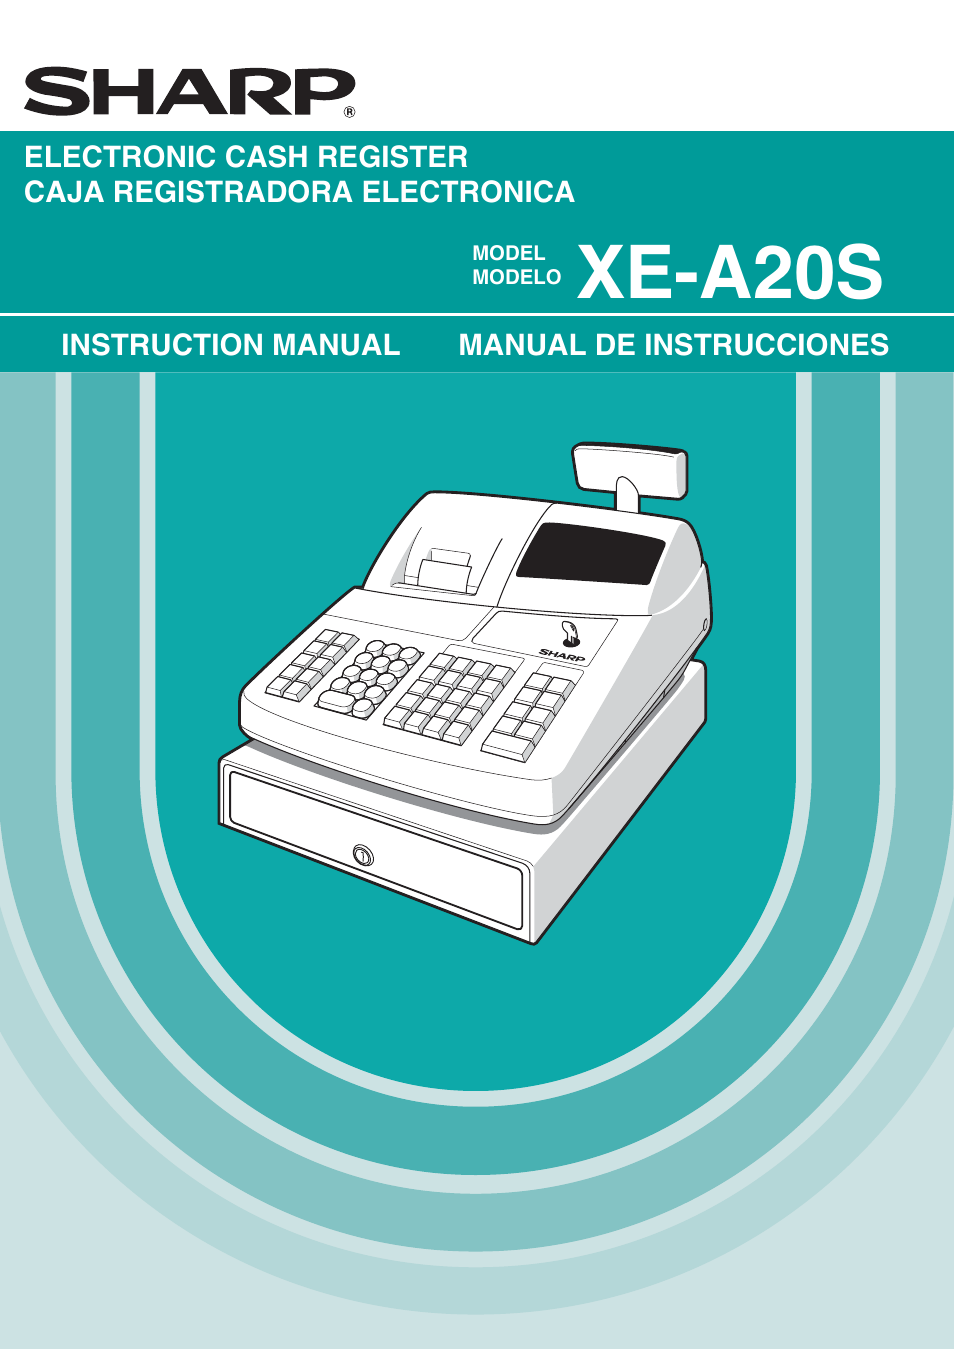 sharp electronic cash register xe a20s user manual 108 pages rh manualsdir com sharp xe-a505 cash register instruction manual sharp cash register xe-a102 instruction manual